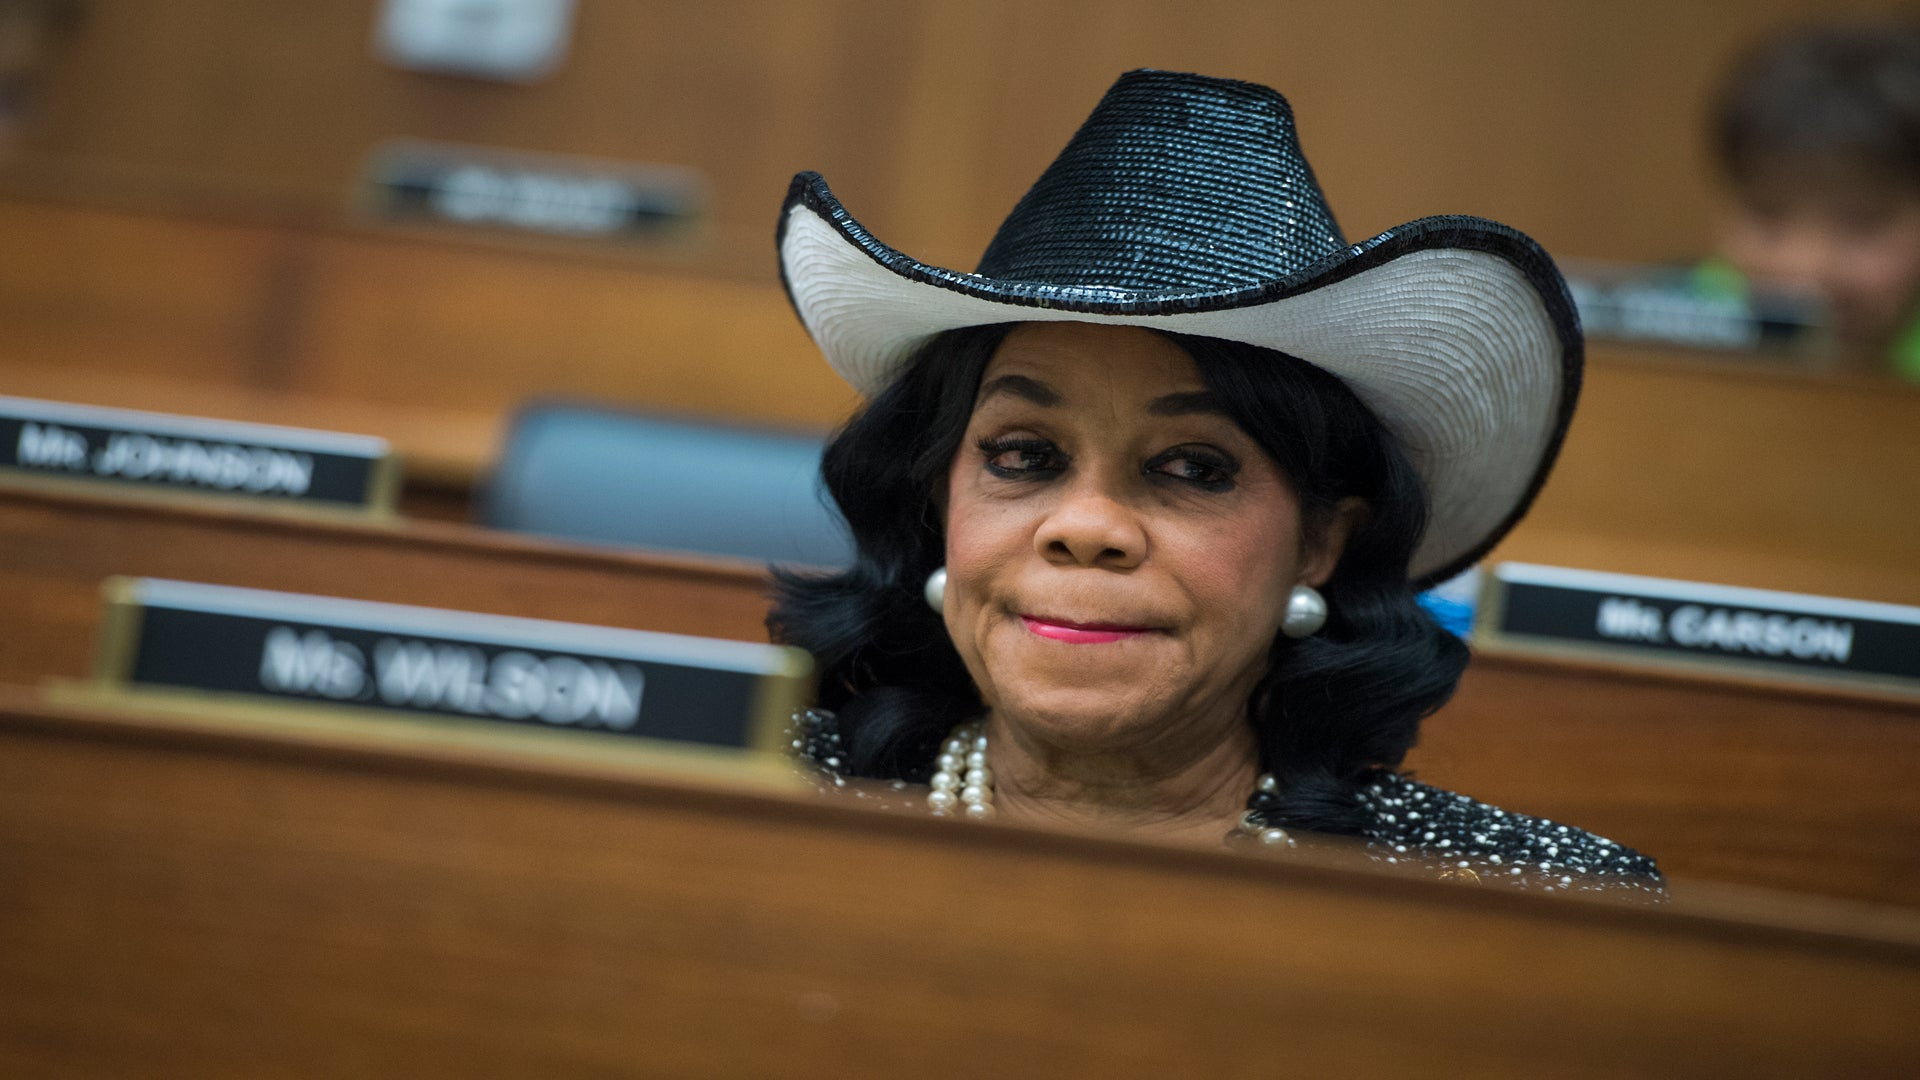 #IBelieveFrederica: What To Know About The Dispute Between Rep. Frederica Wilson, Trump And A Gold Star Family